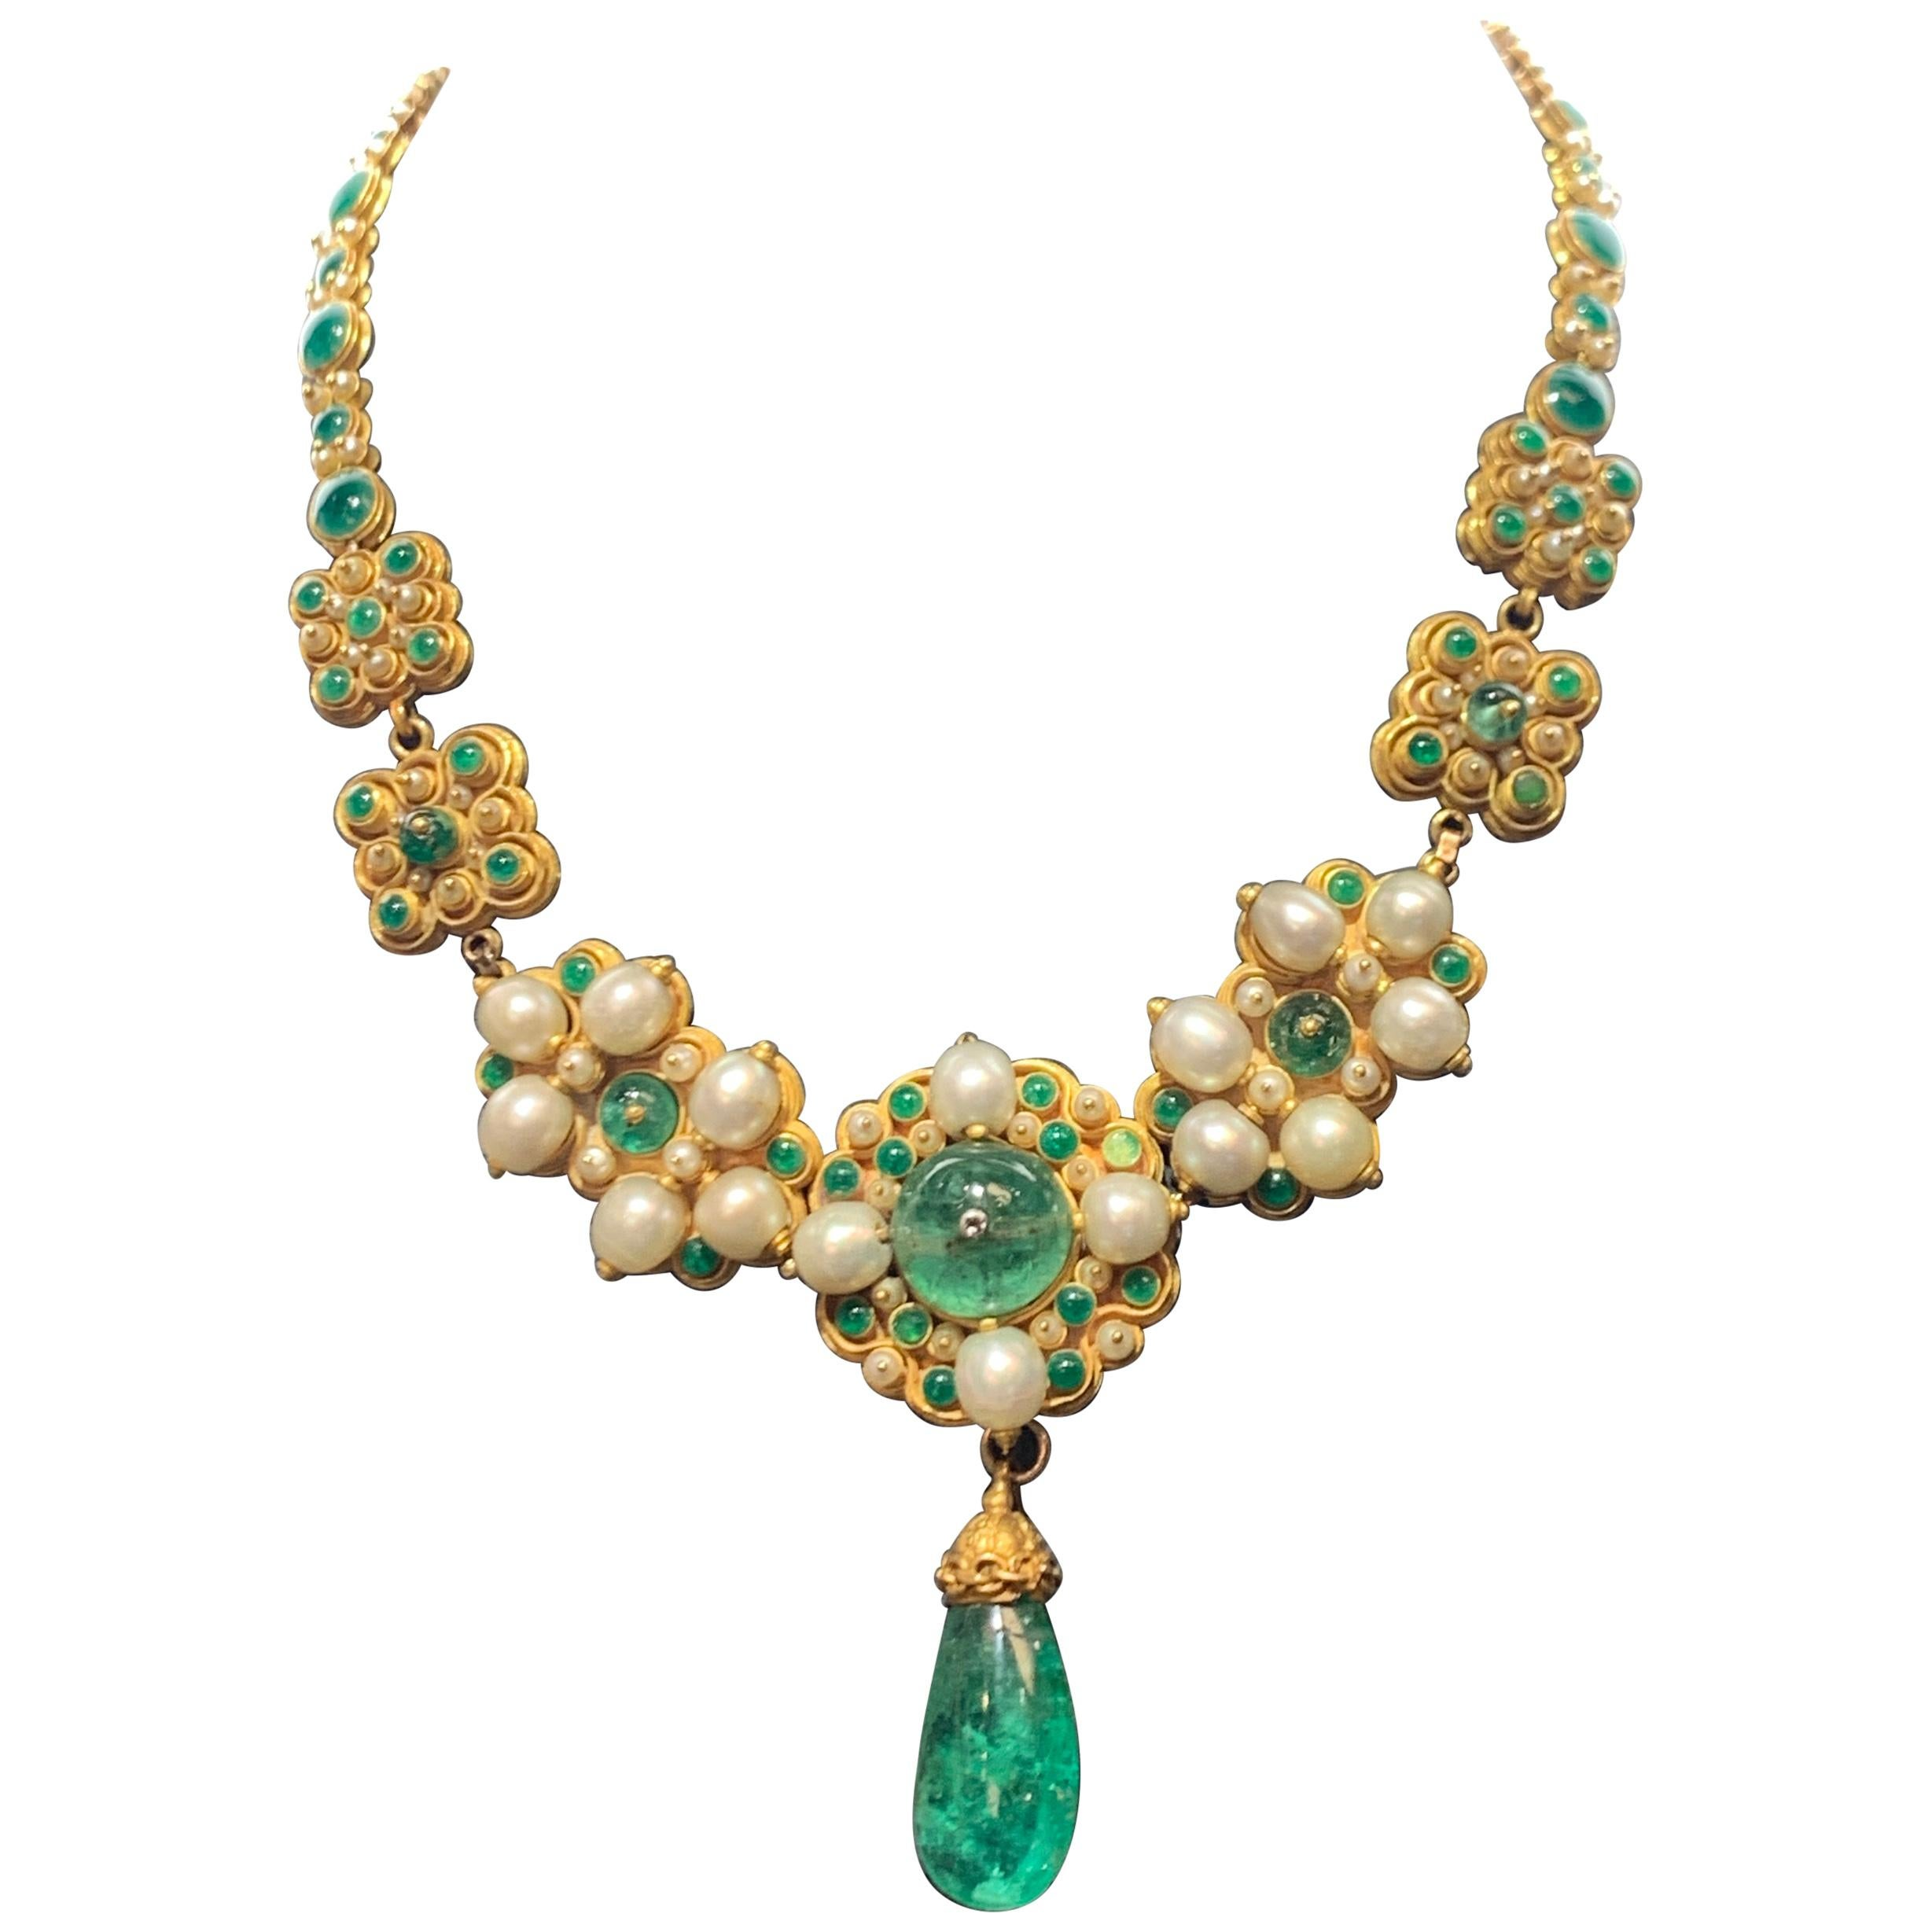 Antique Emerald Pearl and Enamel Necklace